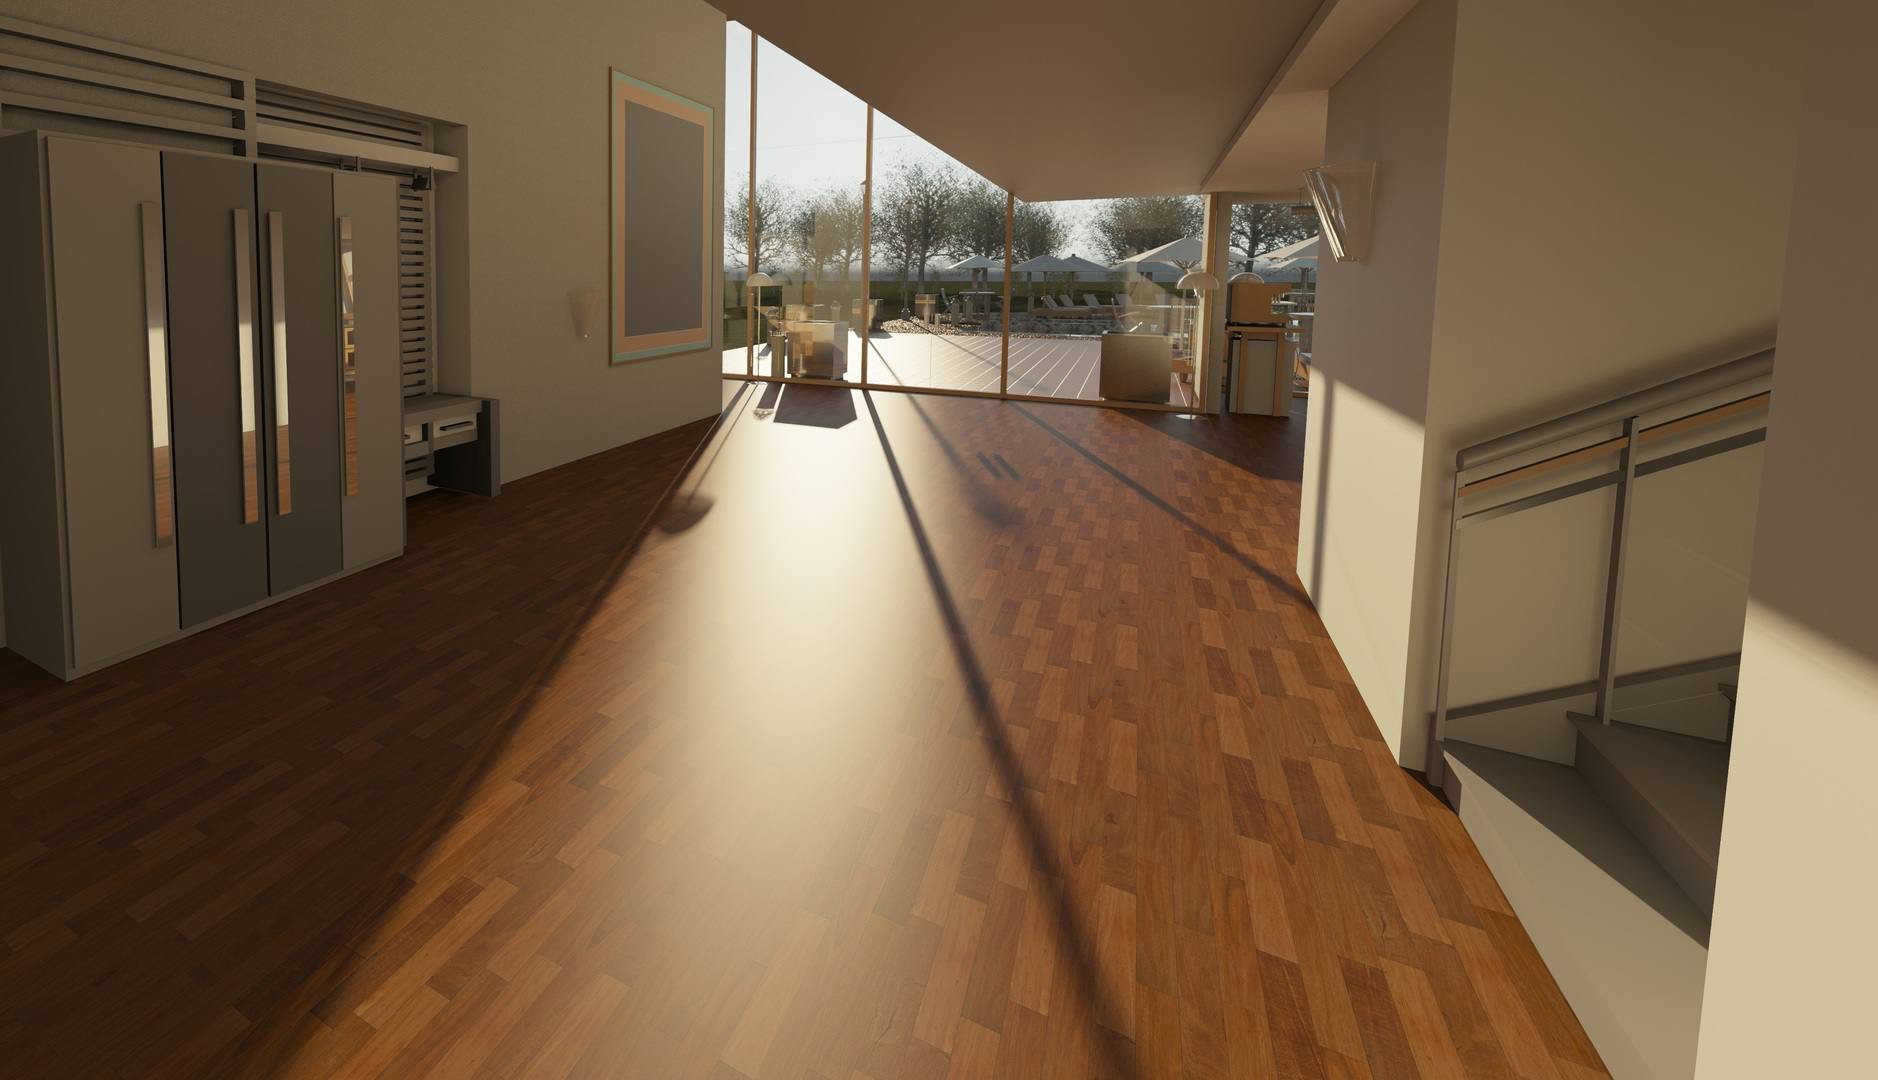 is hardwood flooring worth it of common flooring types currently used in renovation and building inside architecture wood house floor interior window 917178 pxhere com 5ba27a2cc9e77c00503b27b9